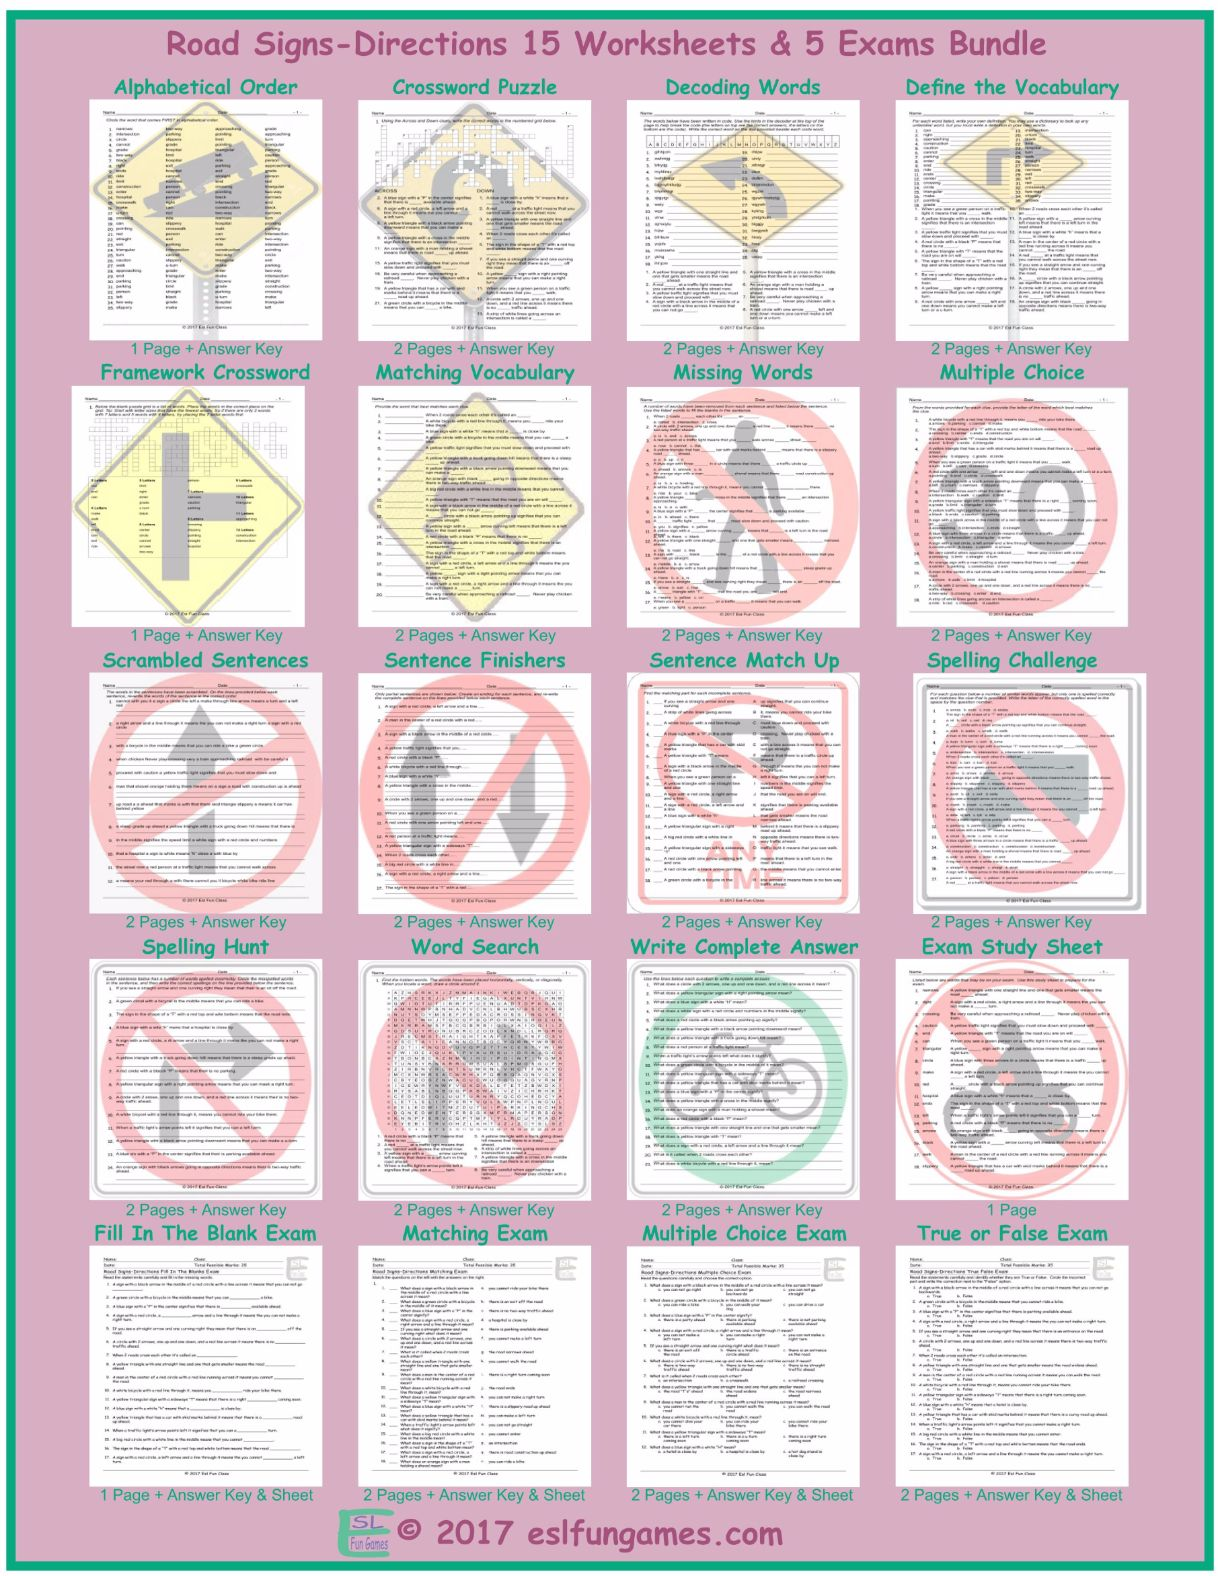 Road Signs Directions 20 Worksheet And Exam Bundle